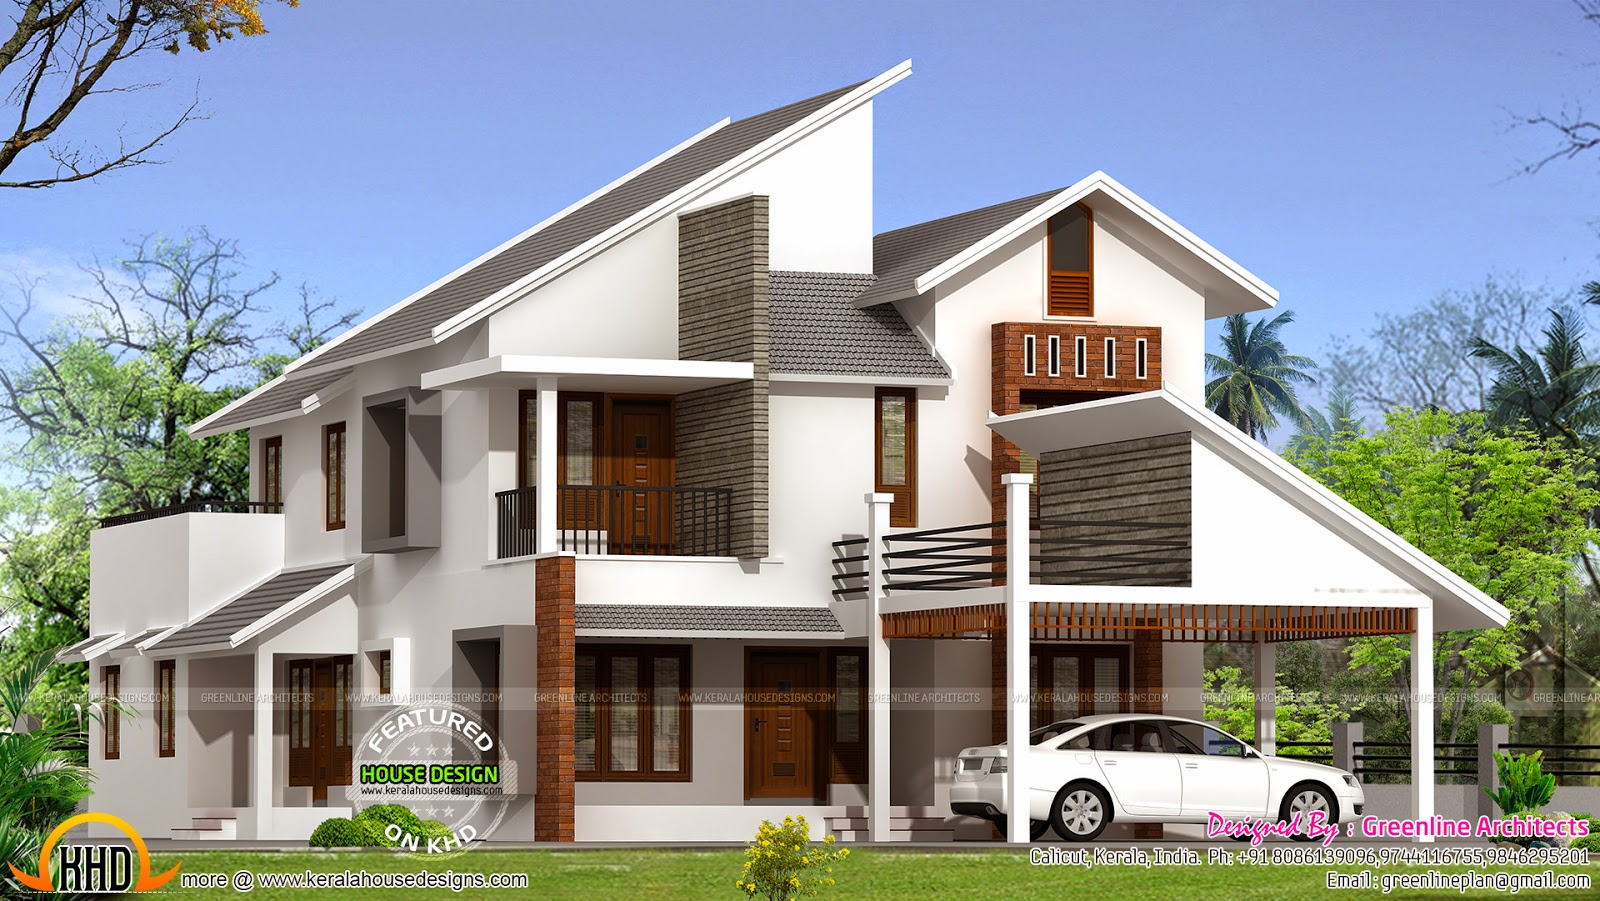 First floor 1274 sq ft total area 2830 sq ft bedrooms 4 bathrooms 5 design style modern sloped roof